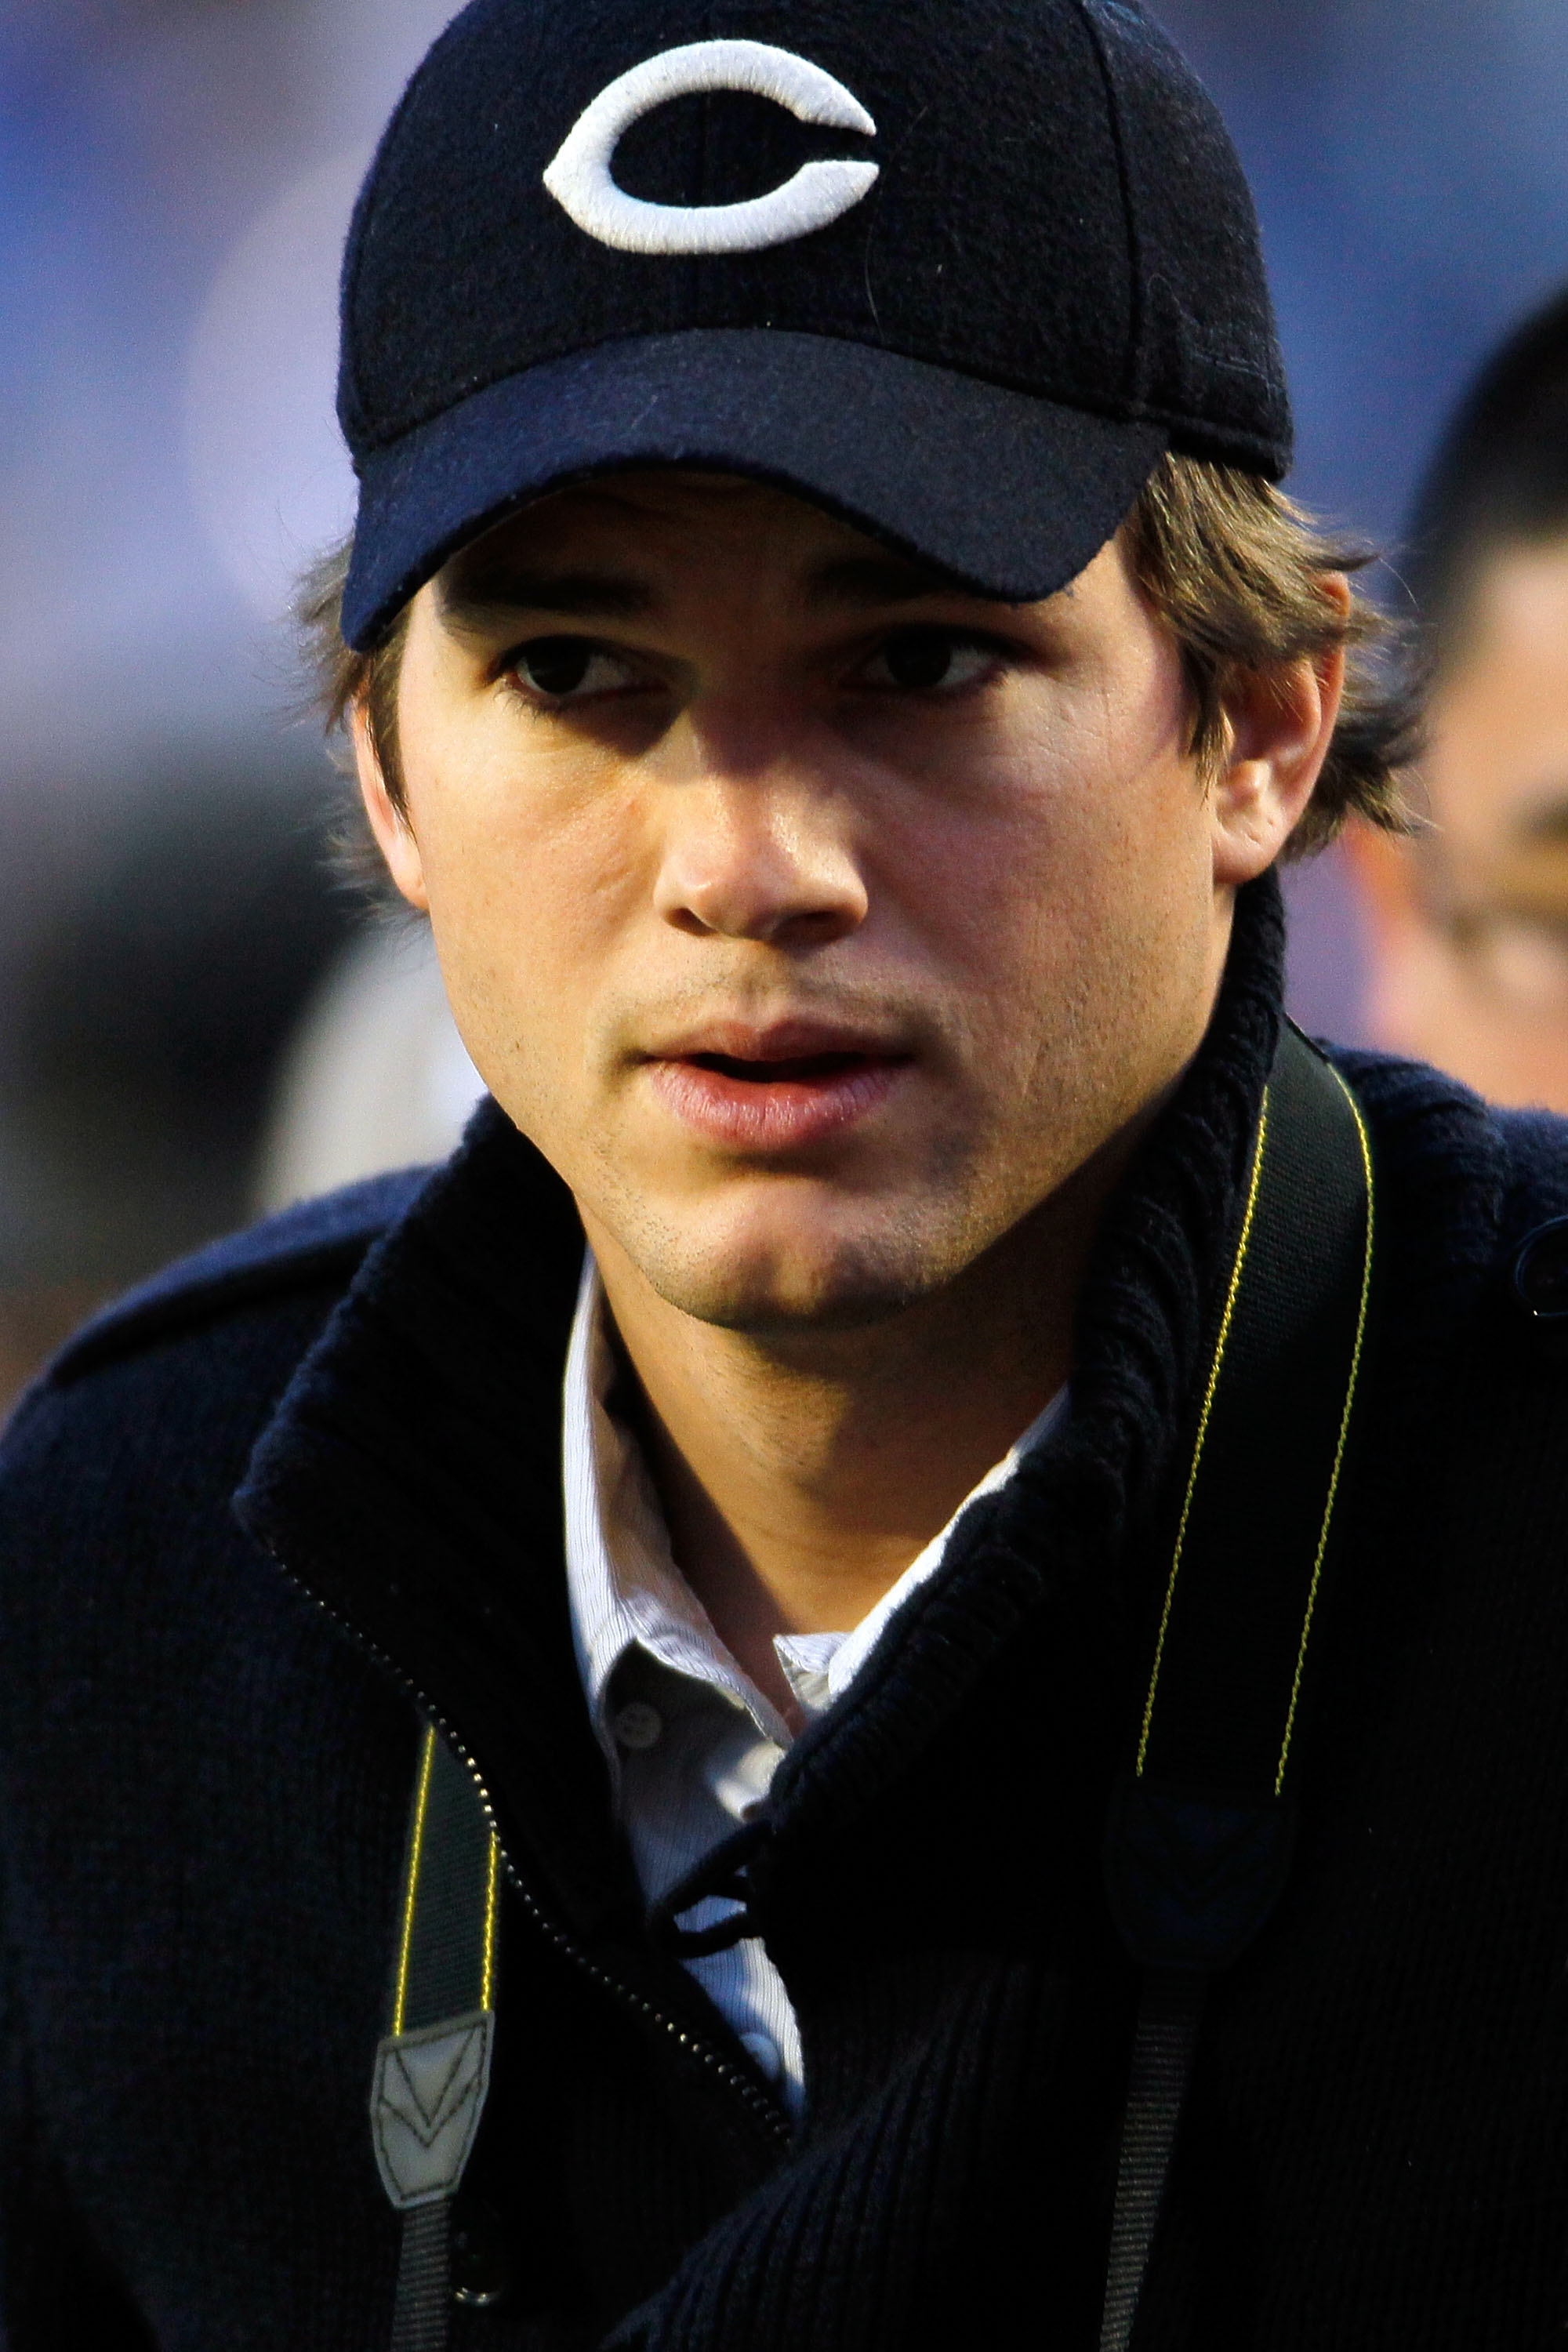 MIAMI GARDENS, FL - FEBRUARY 07: Actor Ashton Kutcher stands on the sidelines prior to Super Bowl XLIV between the Indianapolis Colts and the New Orleans Saints on February 7, 2010 at Sun Life Stadium in Miami Gardens, Florida.  (Photo by Donald Miralle/G